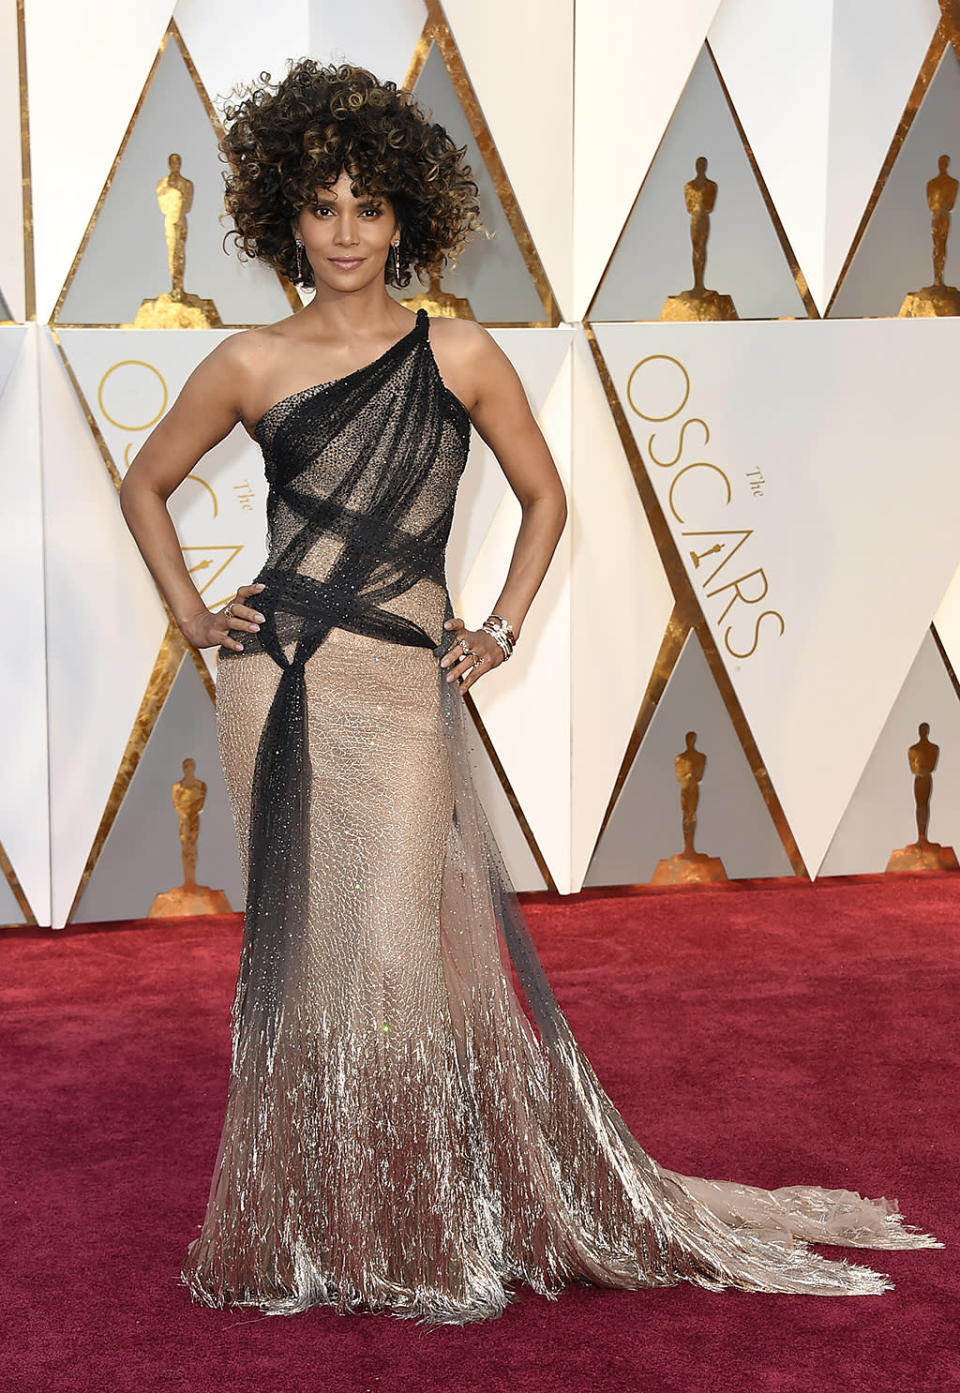 """<p>While Halle Berry's hairdo blew up Twitter, her Versace gown was also something special. She told E!, """"It's romantic and feminine and makes me feel good."""" Us, too!<br> (Photo by Jordan Strauss/Invision/AP)<br><br><a rel=""""nofollow"""" href=""""https://www.yahoo.com/style/oscars-2017-vote-for-the-best-and-worst-dressed-225105125.html"""" data-ylk=""""slk:Go here to vote for best and worst dressed.;outcm:mb_qualified_link;_E:mb_qualified_link;ct:story;"""" class=""""link rapid-noclick-resp yahoo-link"""">Go here to vote for best and worst dressed.</a> </p>"""